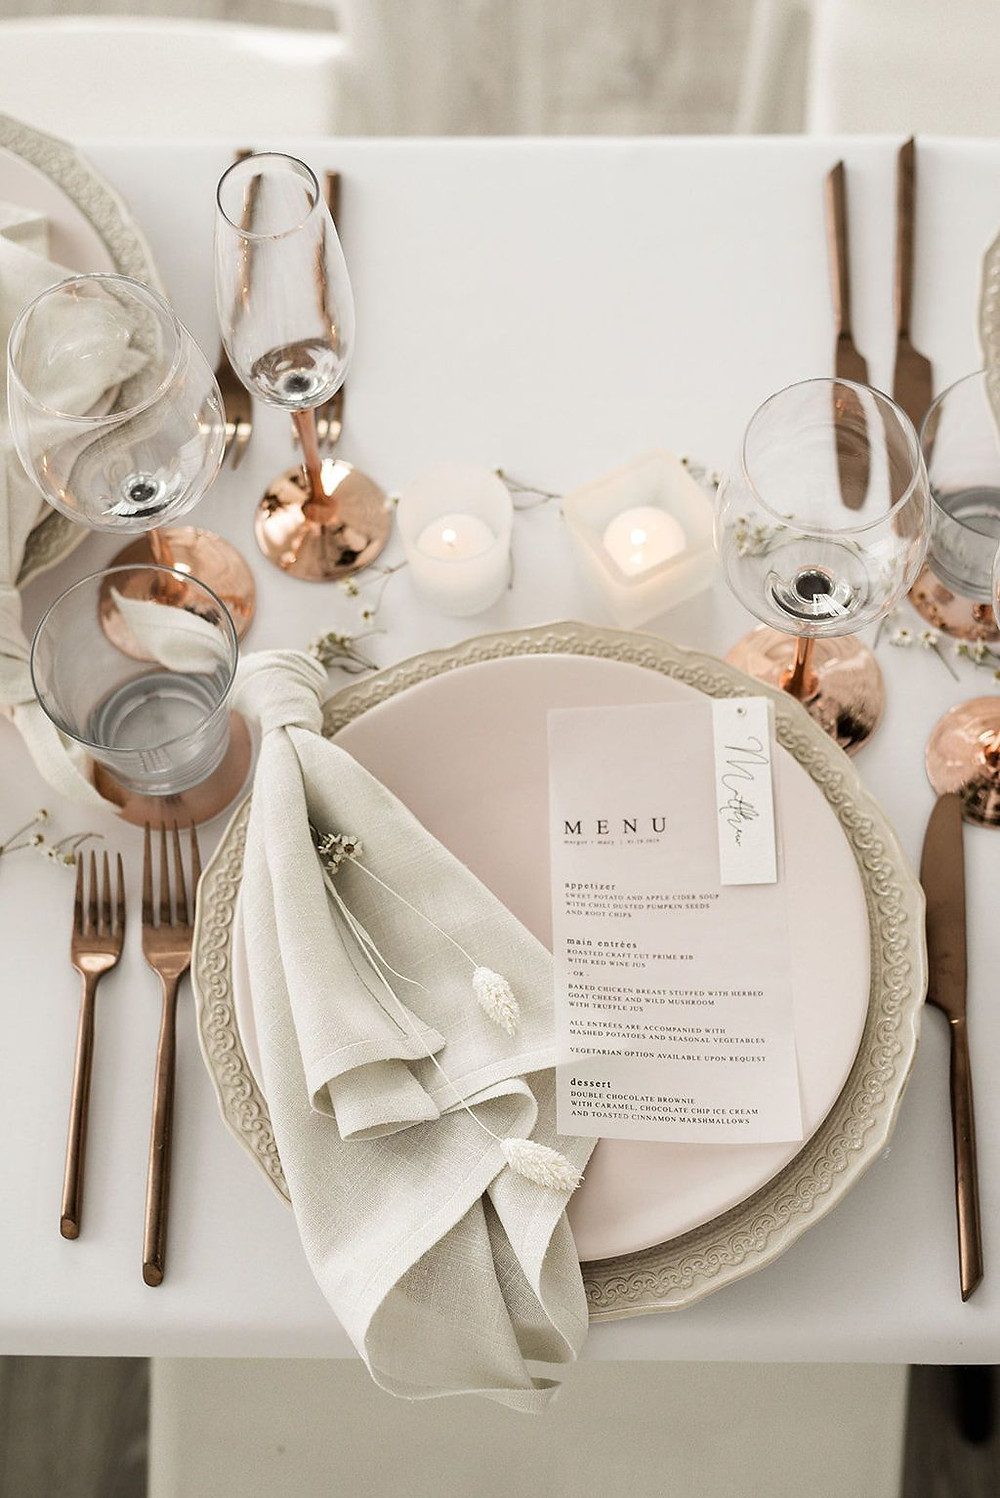 Small weddings Intimate wedding plated meal ideas